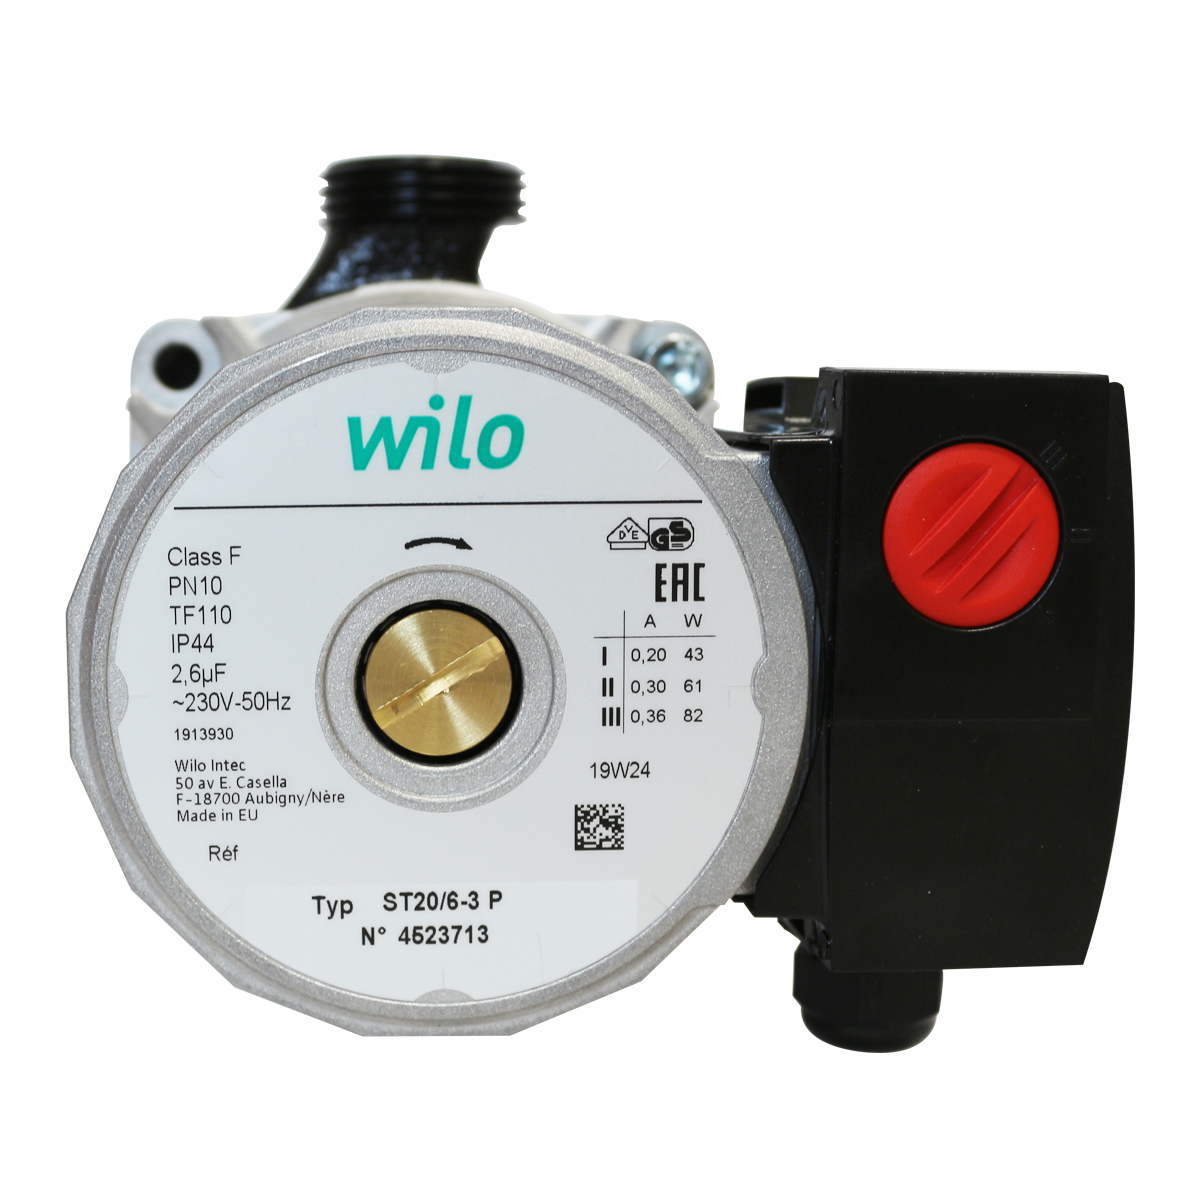 Suntask_Solar_Pumping_Station_Replacement_Pump_Wilo_Pump_1200.jpg